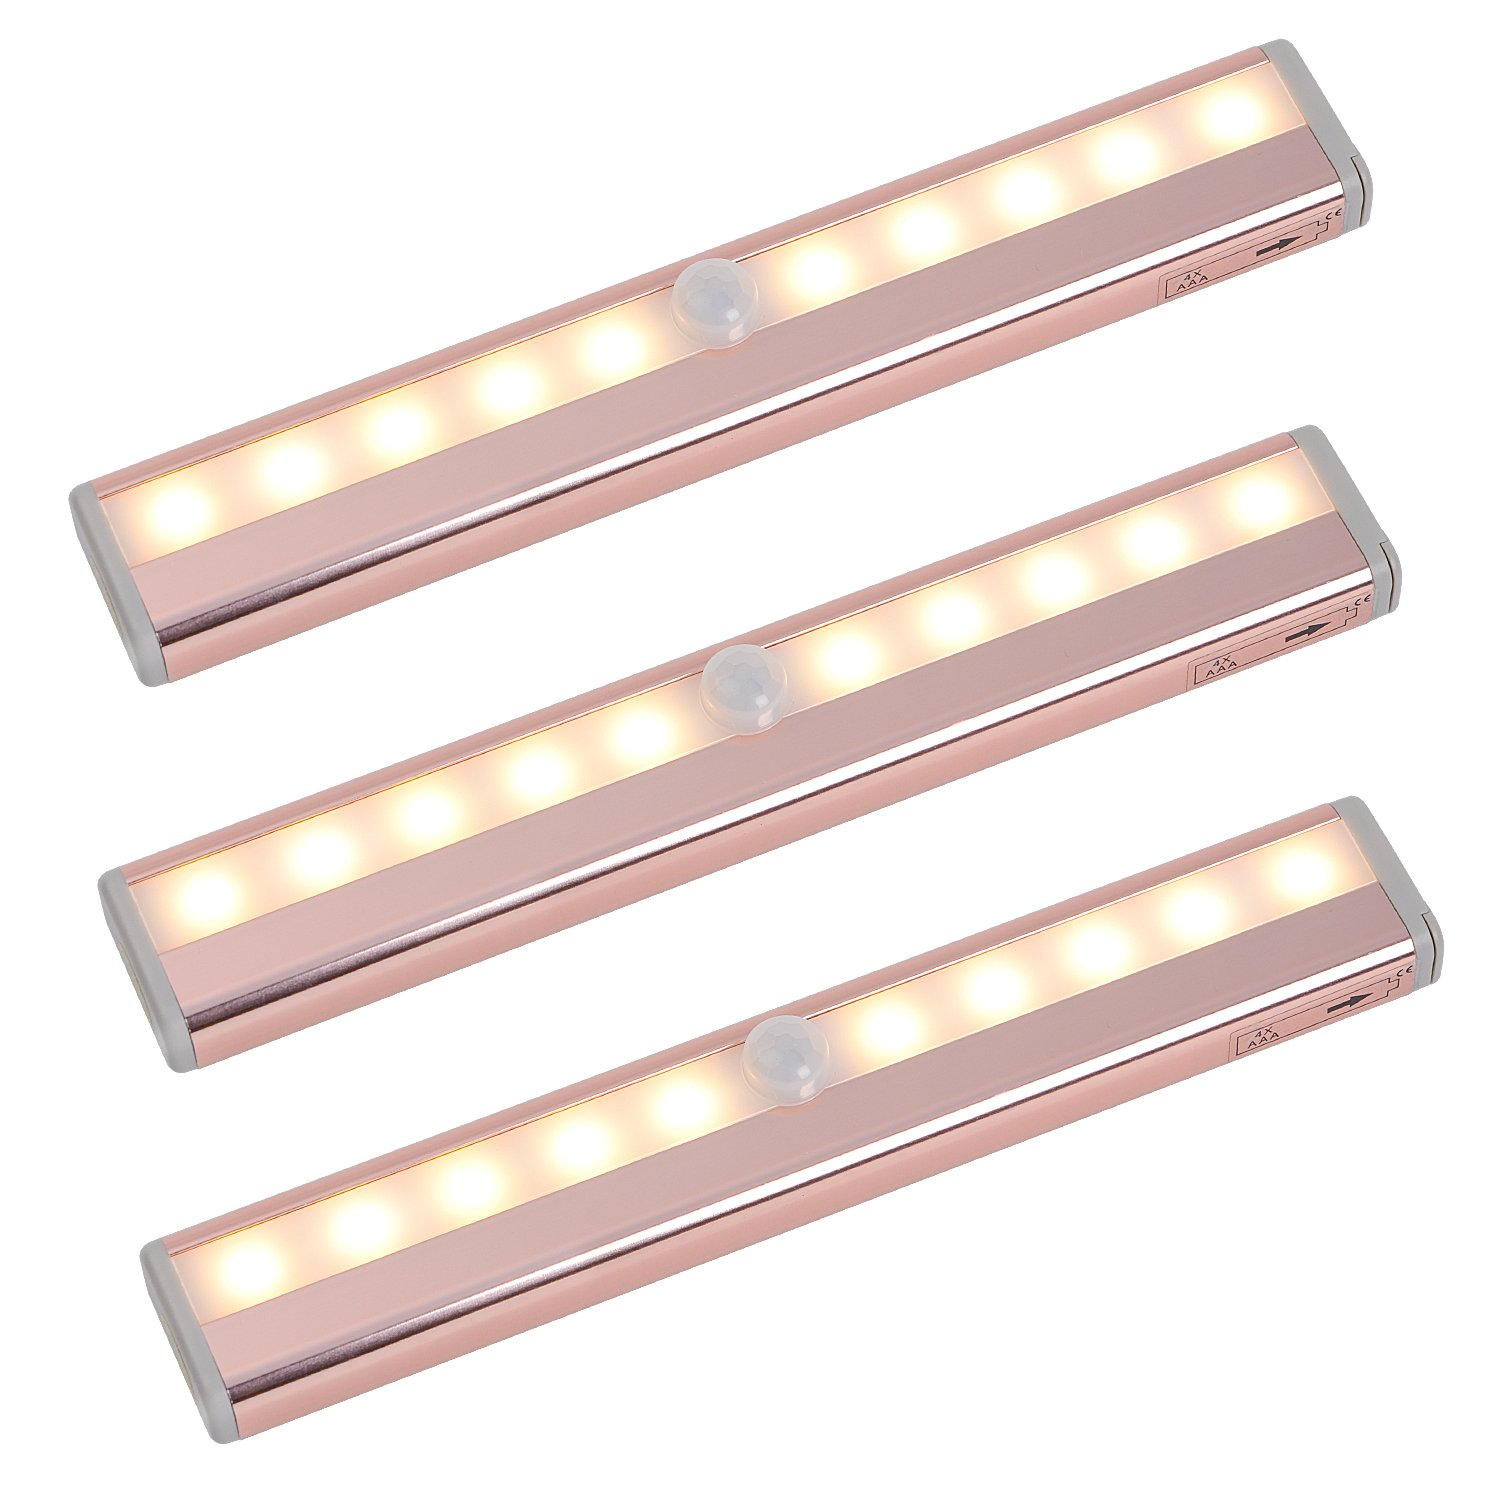 Zoeson Motion Sensing 3-pack Closet Light,10 LED Warm Color Under Cabinet Light